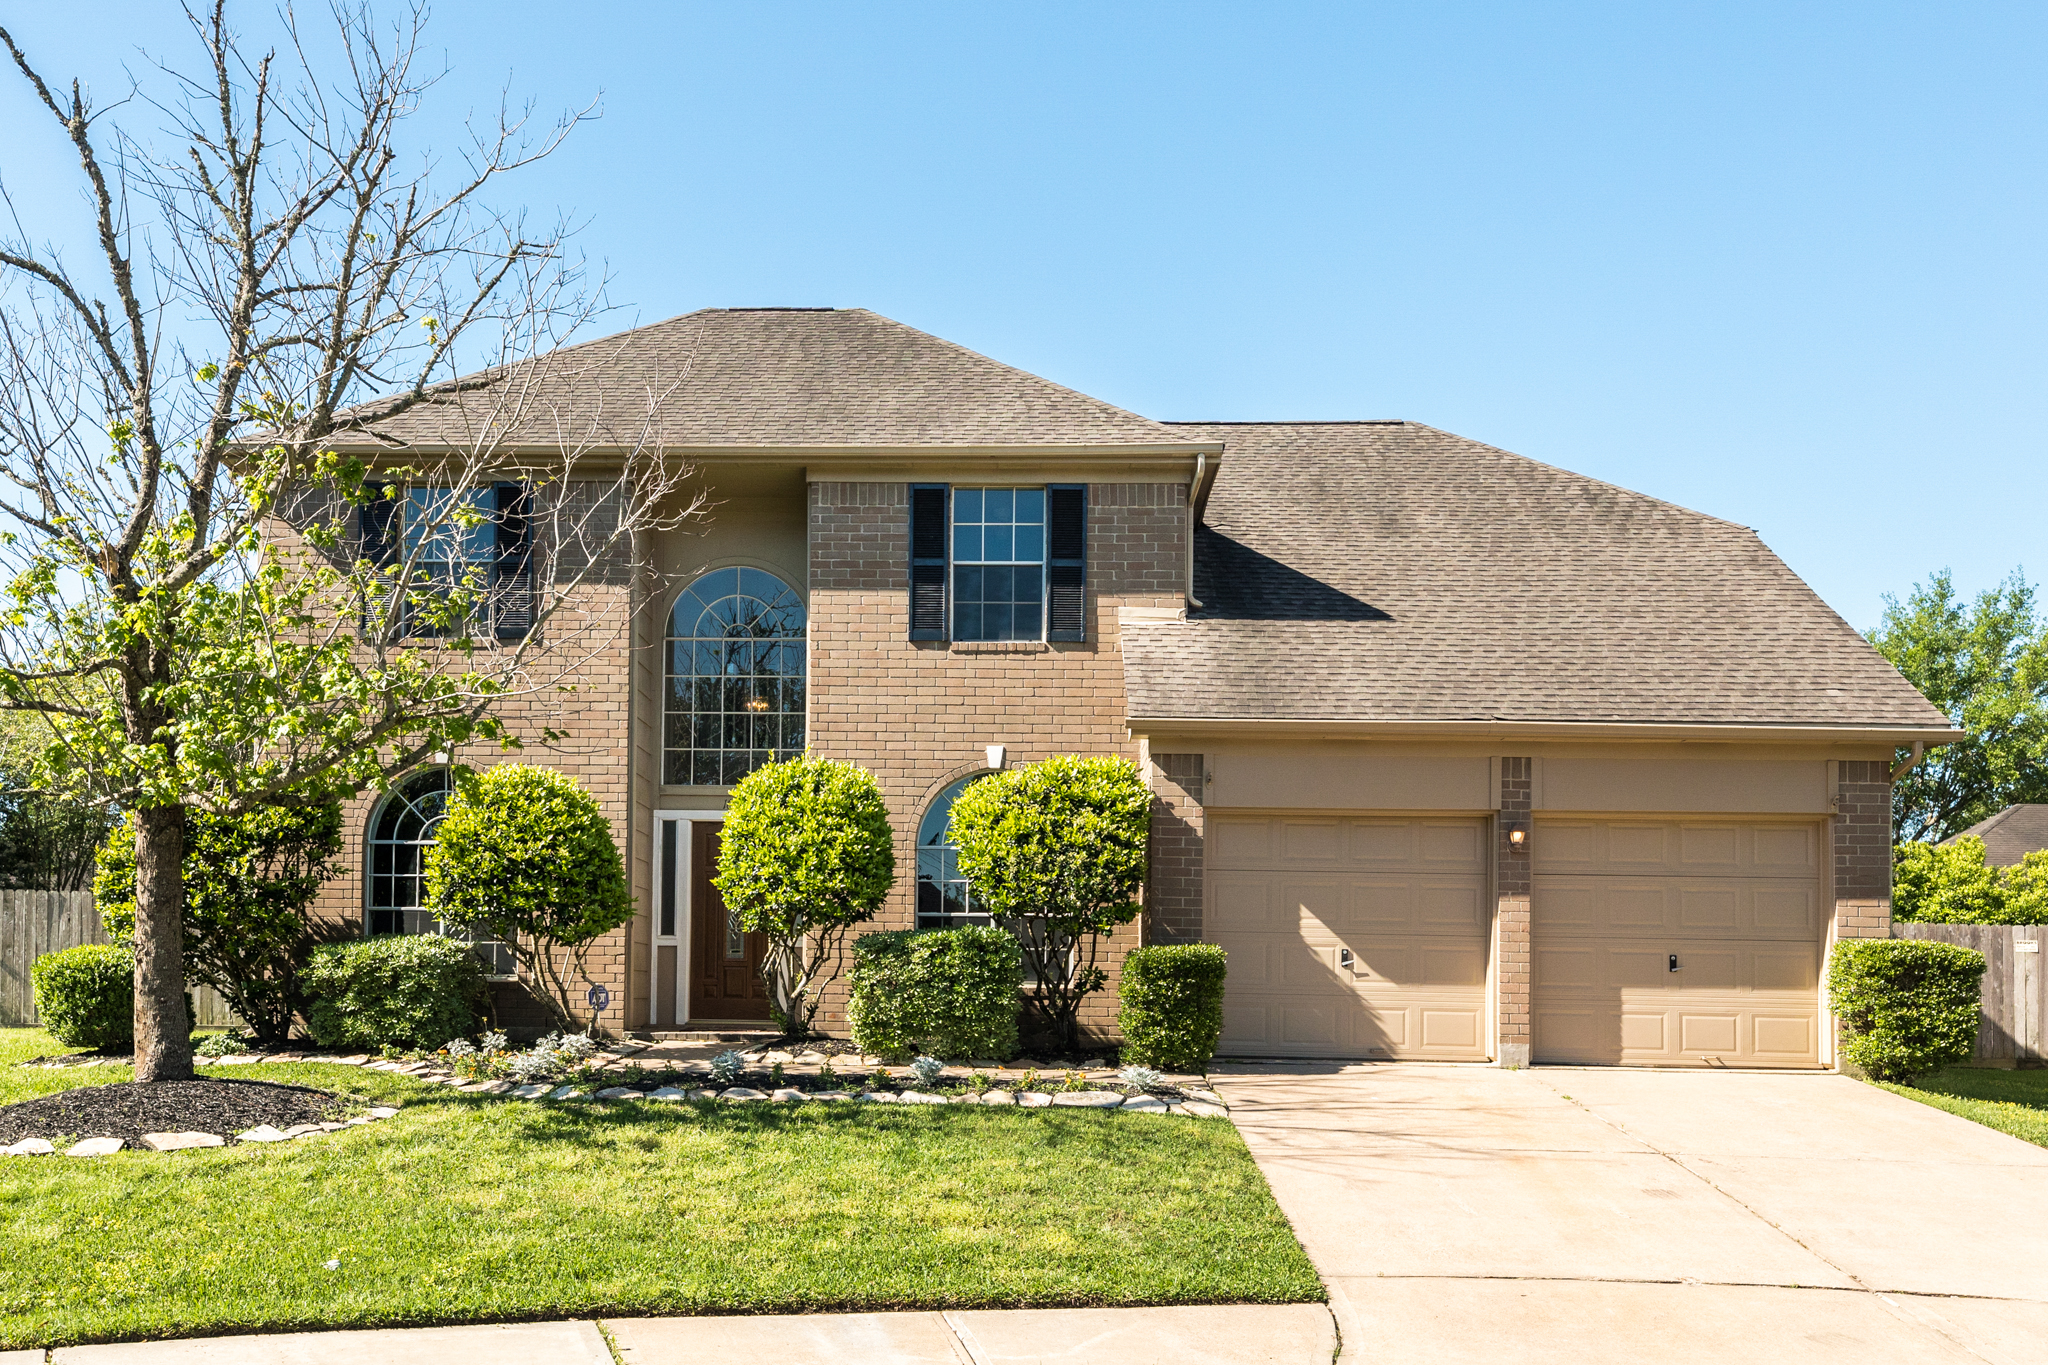 16022 Biscayne Shoals in Friendswood | 2,194 Sq Ft | $250's